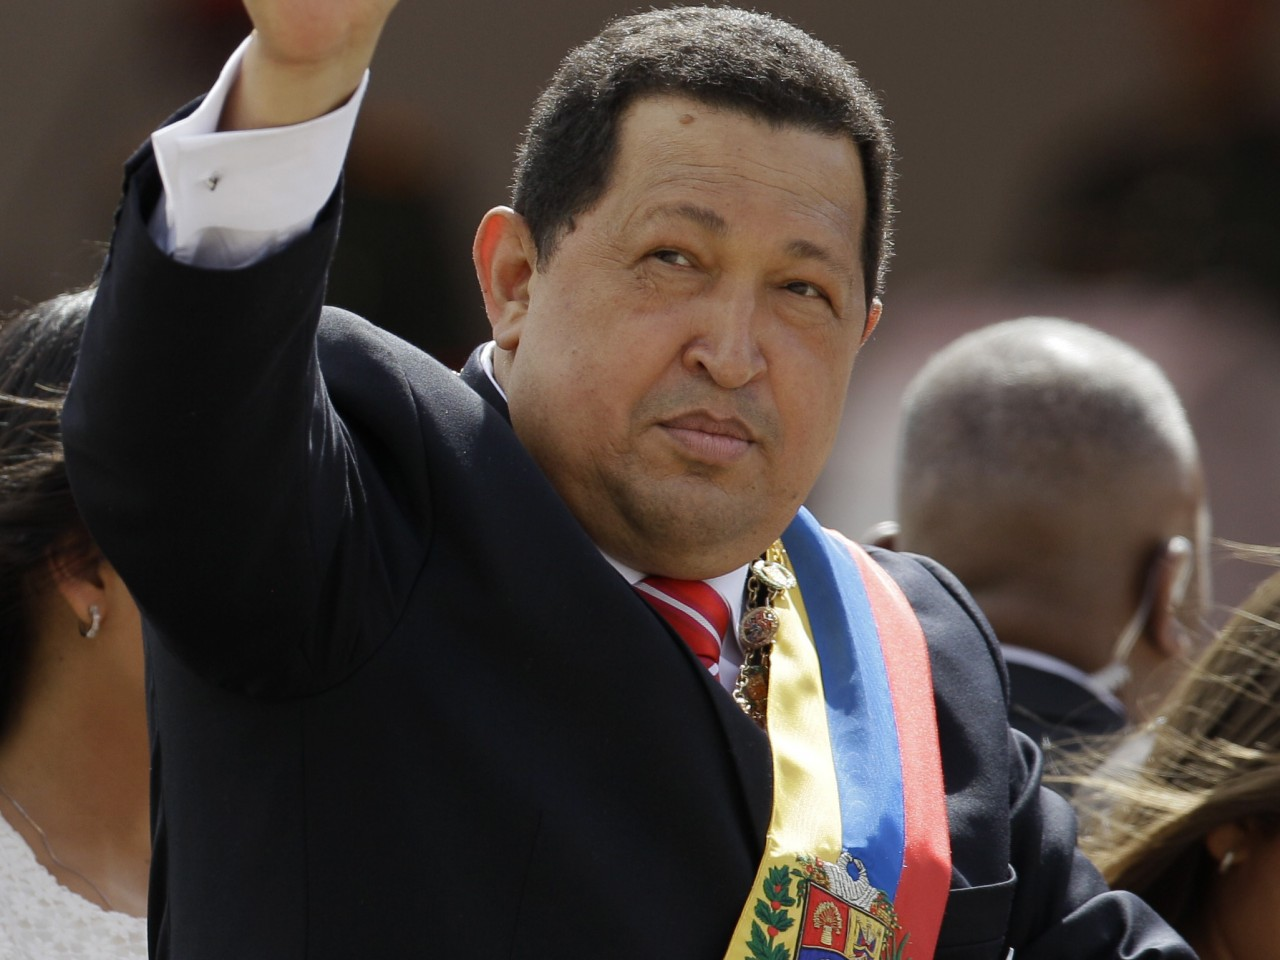 venezuela-chavez-what-is-next.jpeg4-1280x960